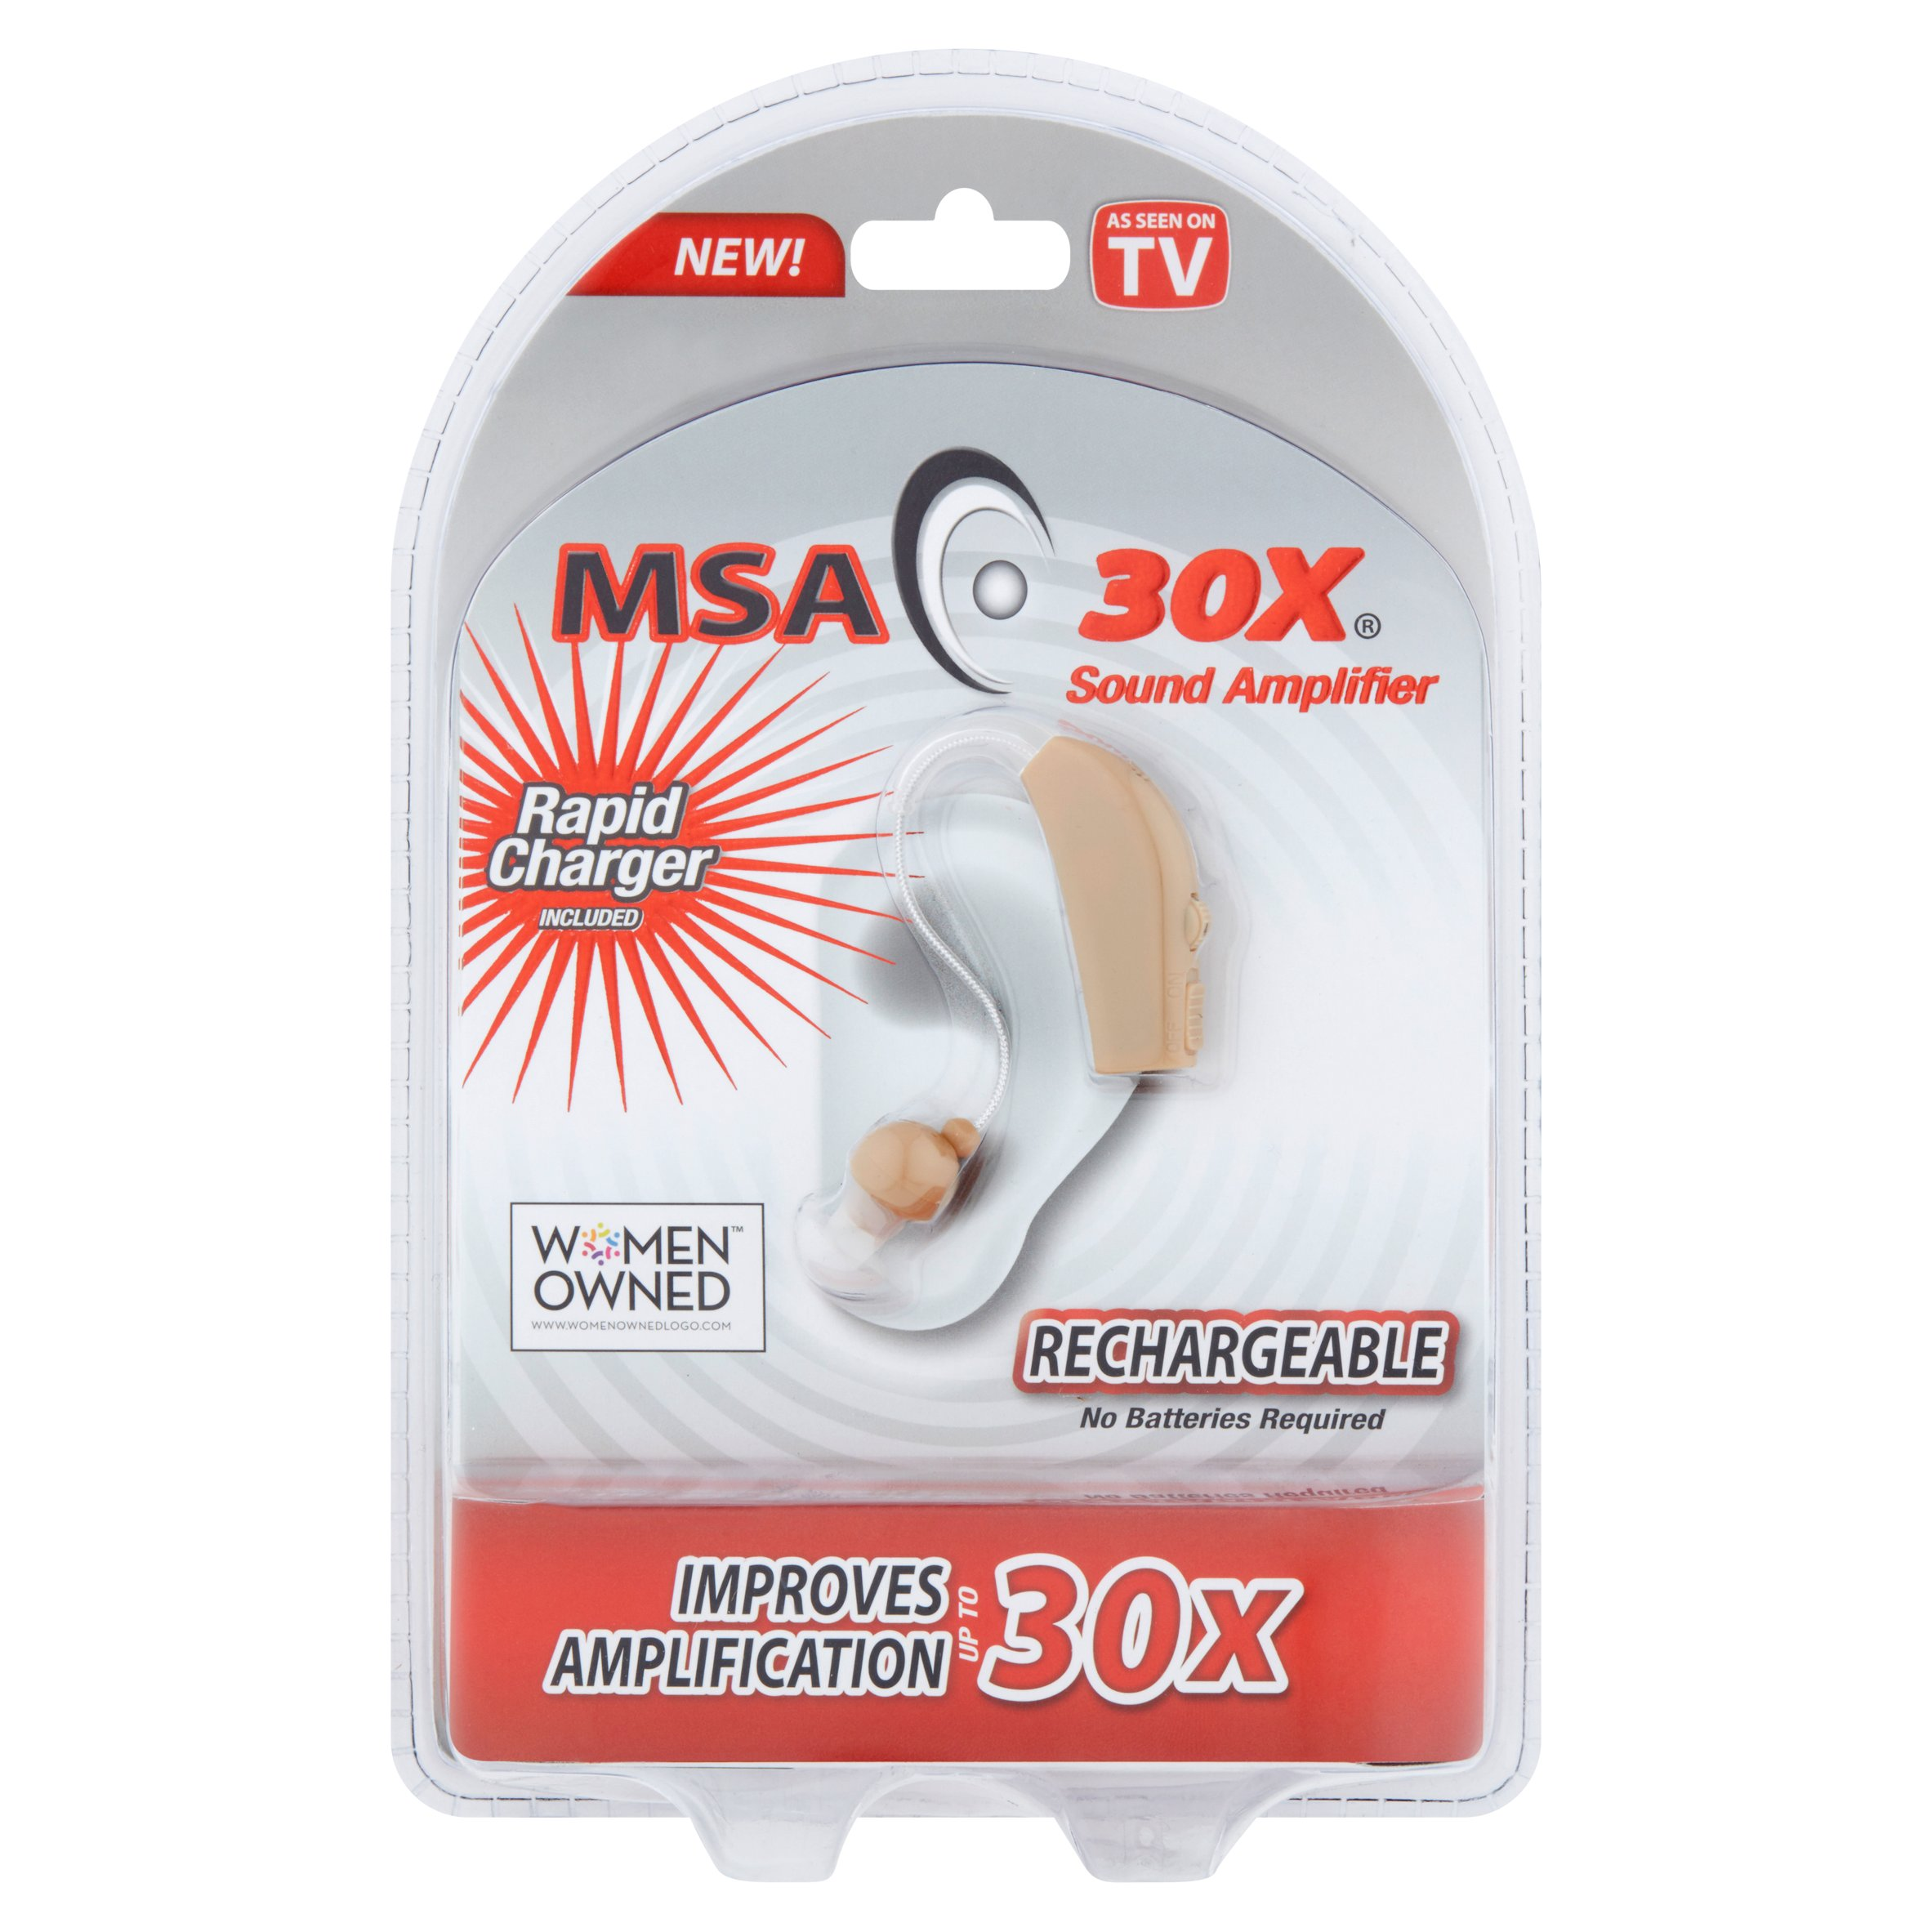 As Seen on TV MSA 30x